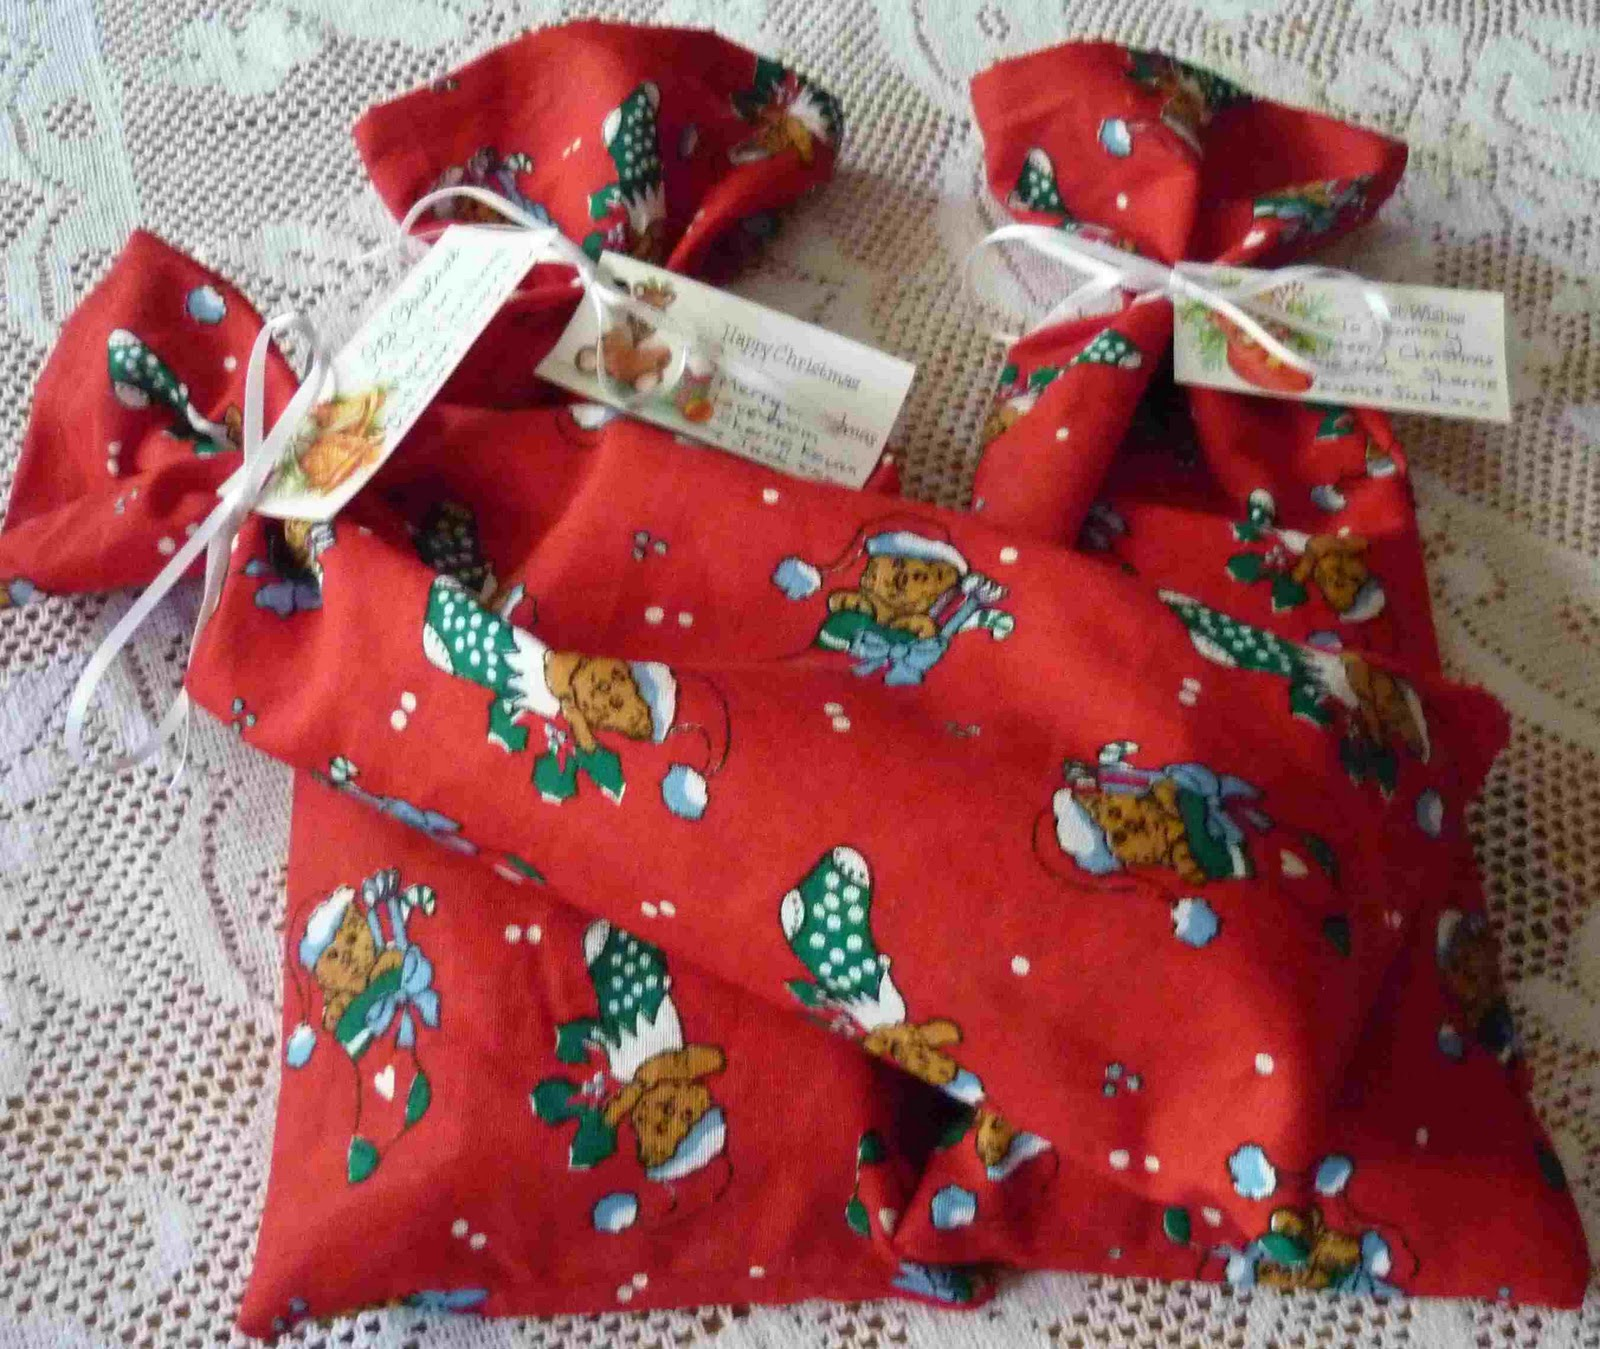 Aug 08,  · Over Christmas Gift Ideas Sewing Tutorials With the kids going back to school over the next week or so our thoughts move to sewing for Christmas, whether it's gifts or projects to sell. With this is mind I thought I would seek out some great sewing ideas.